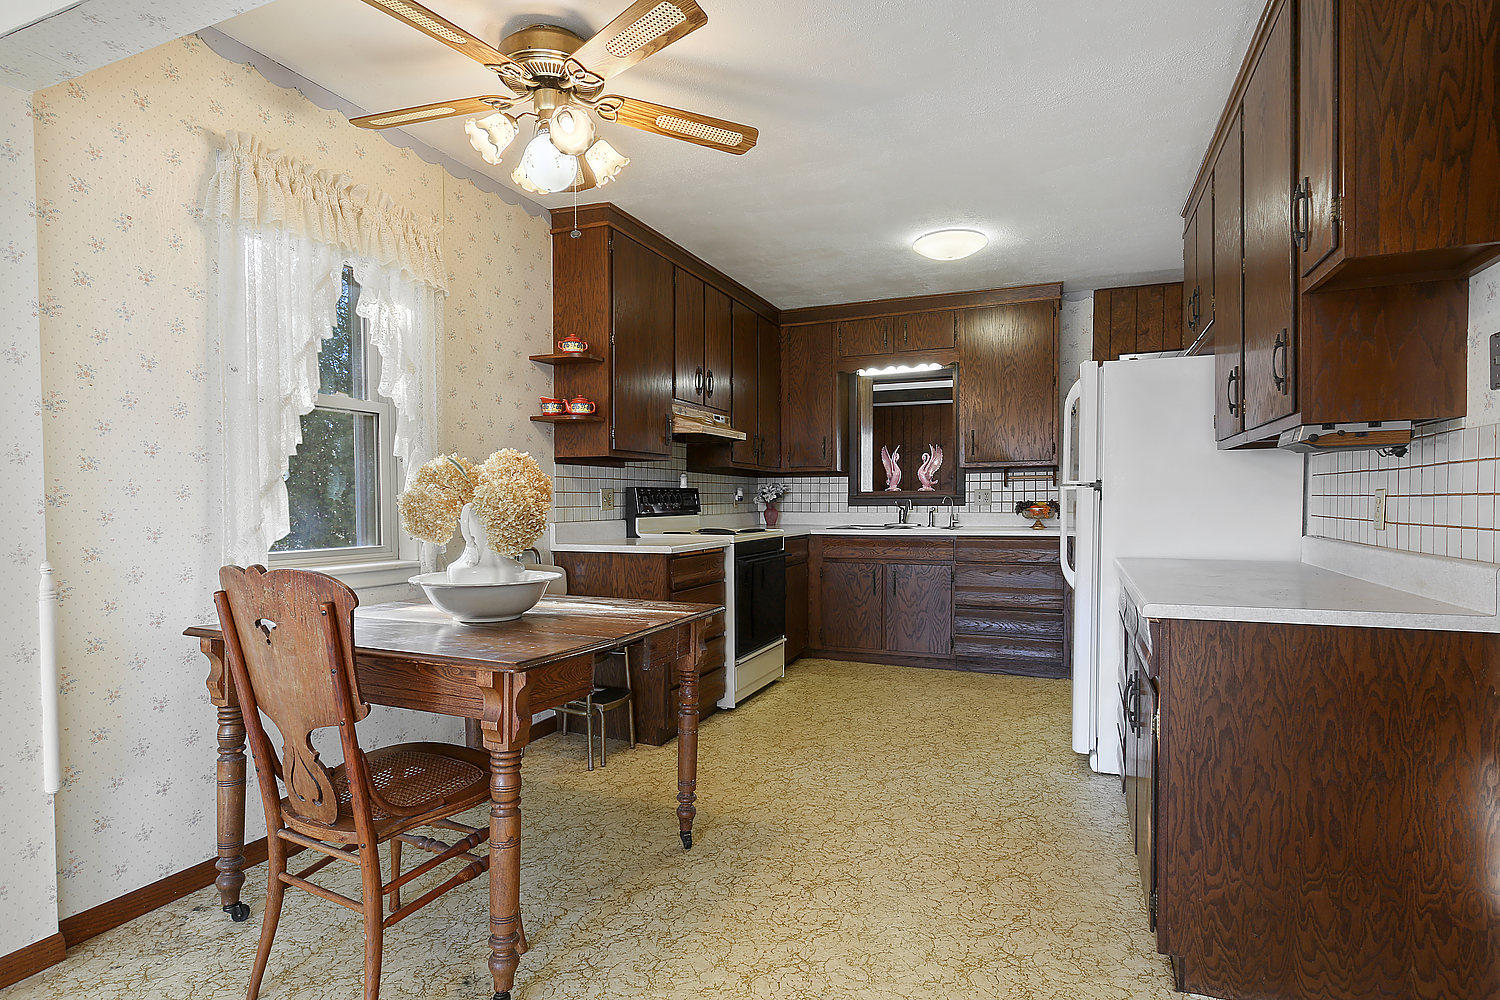 9404 County Road Q, Kossuth, Wisconsin 54241, 3 Bedrooms Bedrooms, ,1 BathroomBathrooms,Single-family,For Sale,County Road Q,1722376